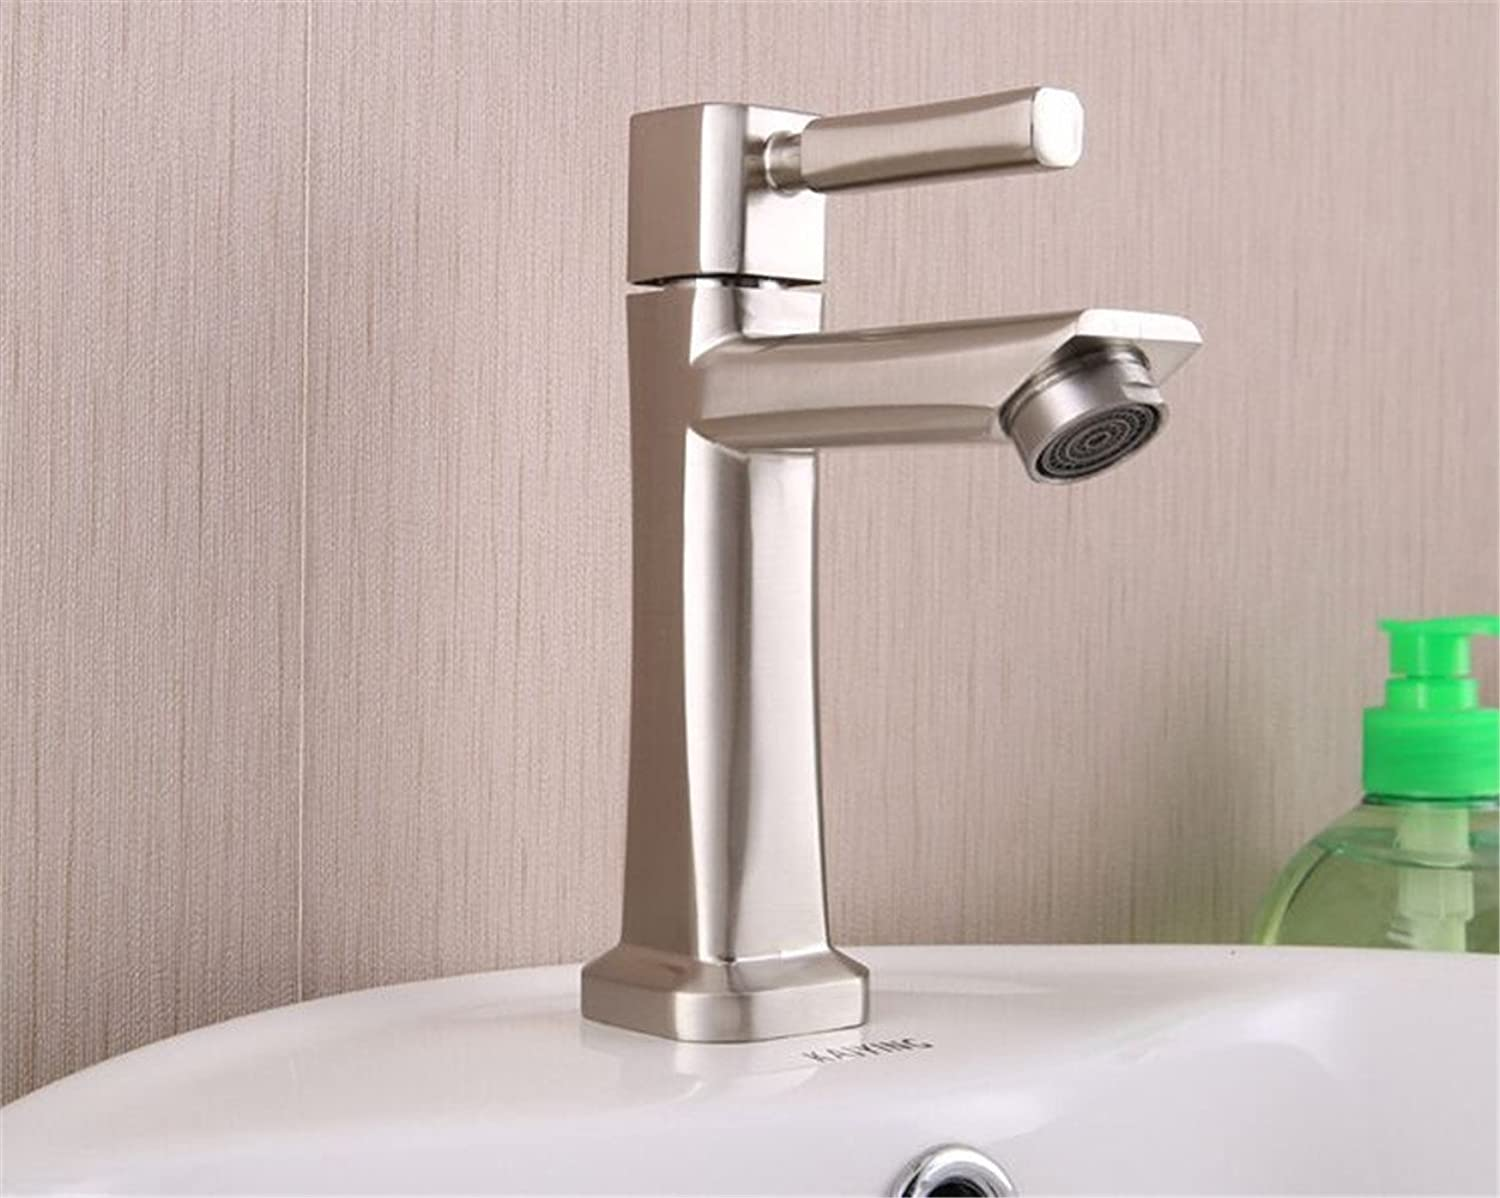 redOOY Taps Faucet Bathroom Faucet greenical Single Cold Basin greenical Single Cold Drawing Water Dragon